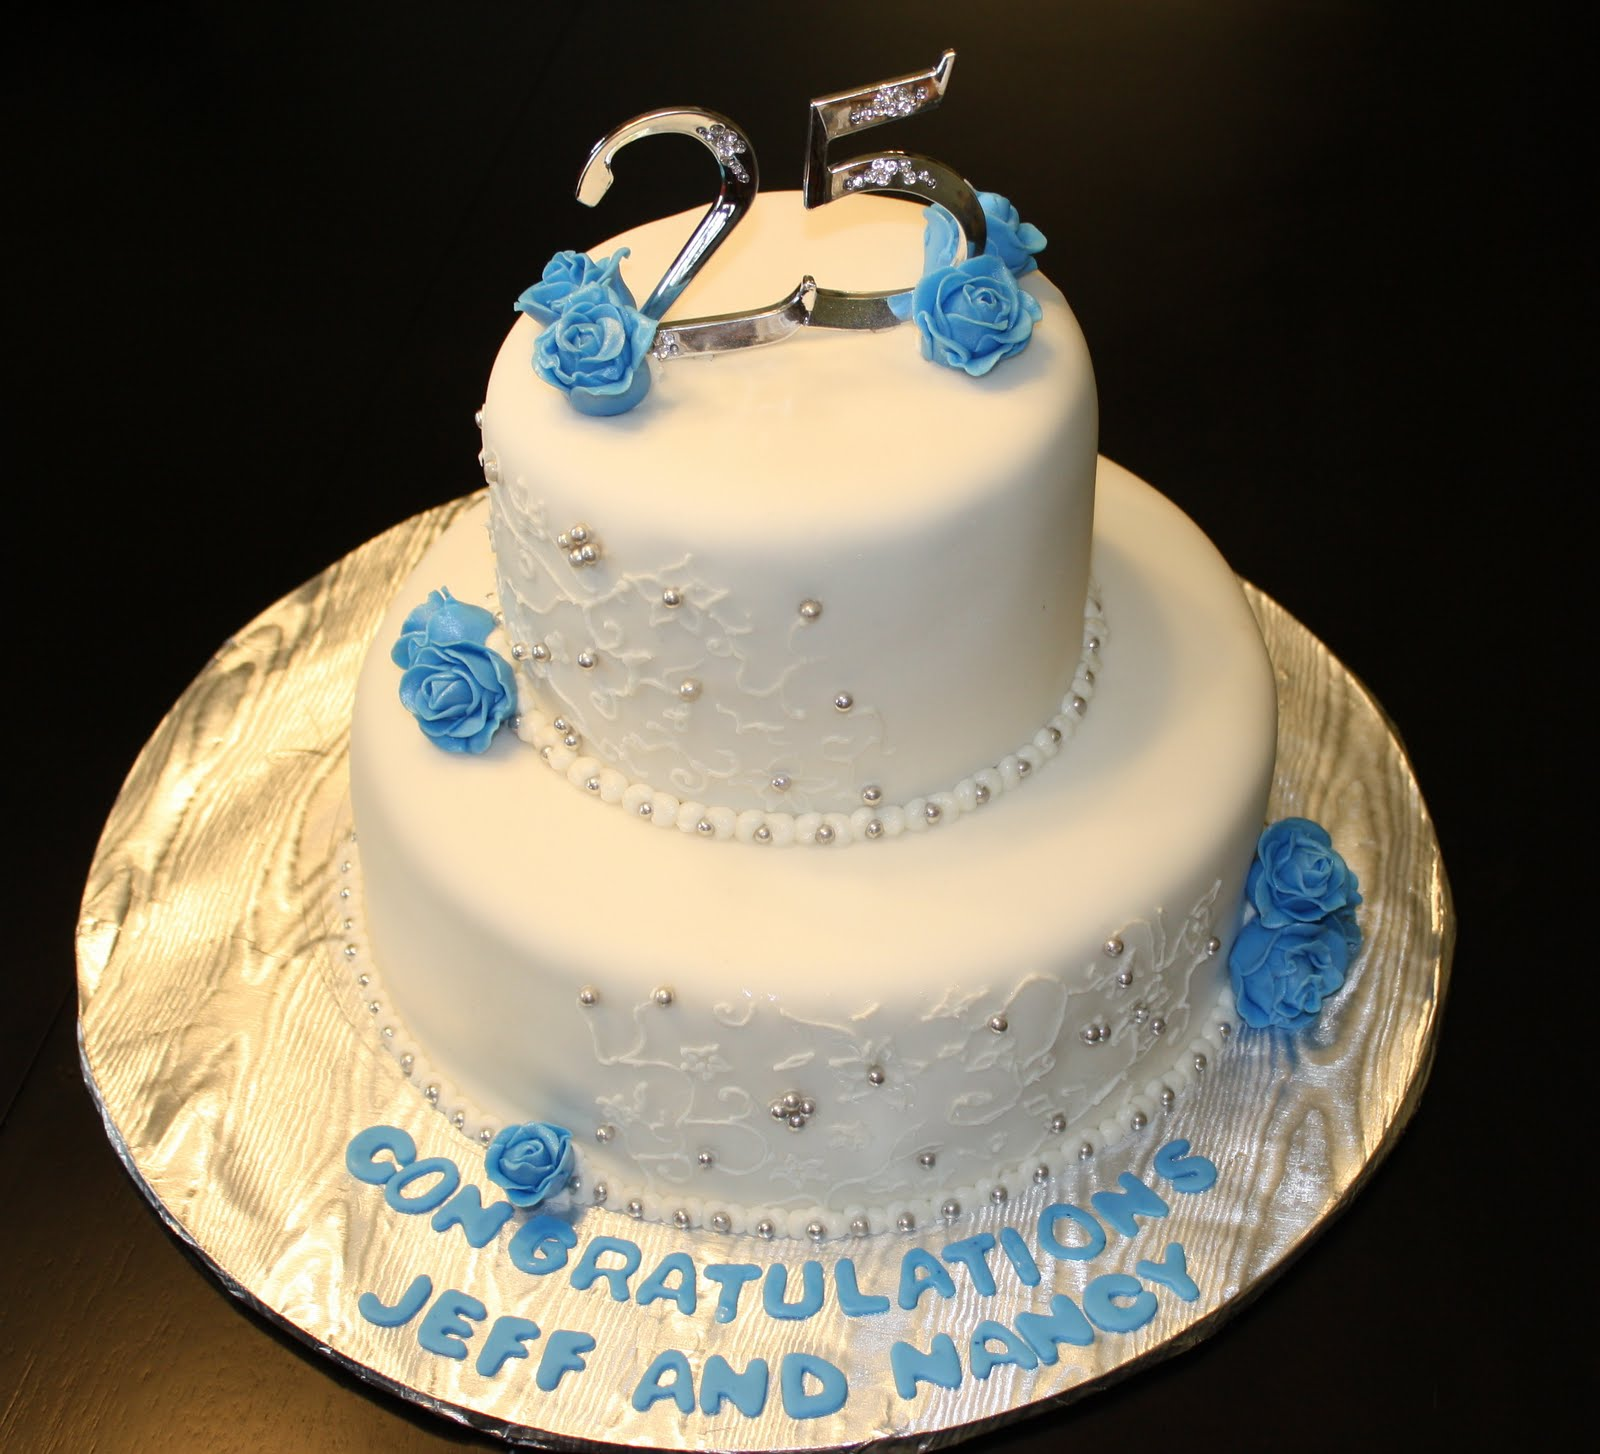 Pictures of 25Th Anniversary Cakes http://hock-cakes.blogspot.com/2010/11/25th-wedding-anniversary.html